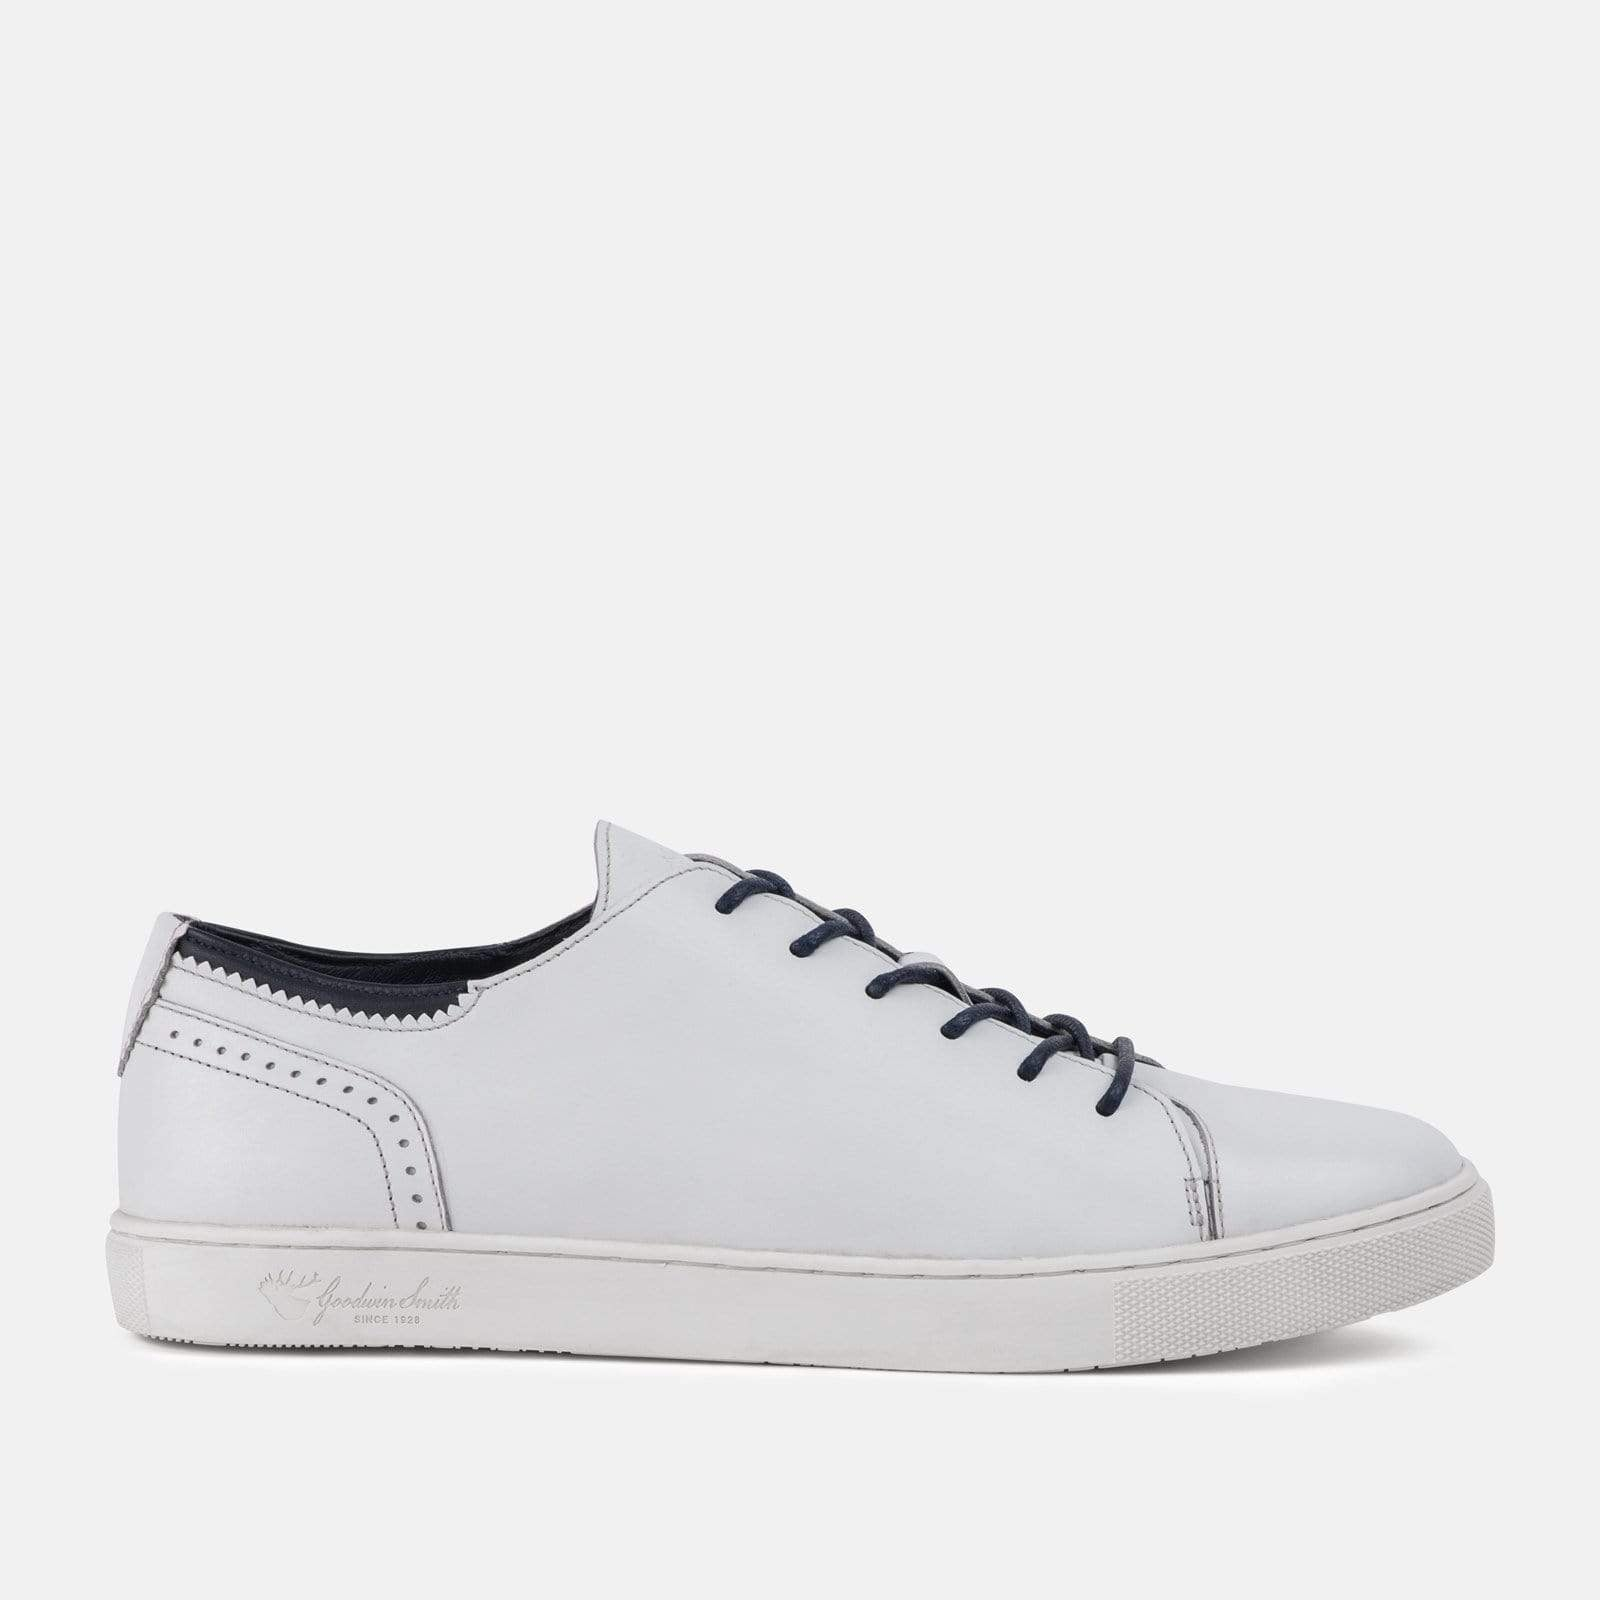 Goodwin Smith Footwear HARLEM WHITE